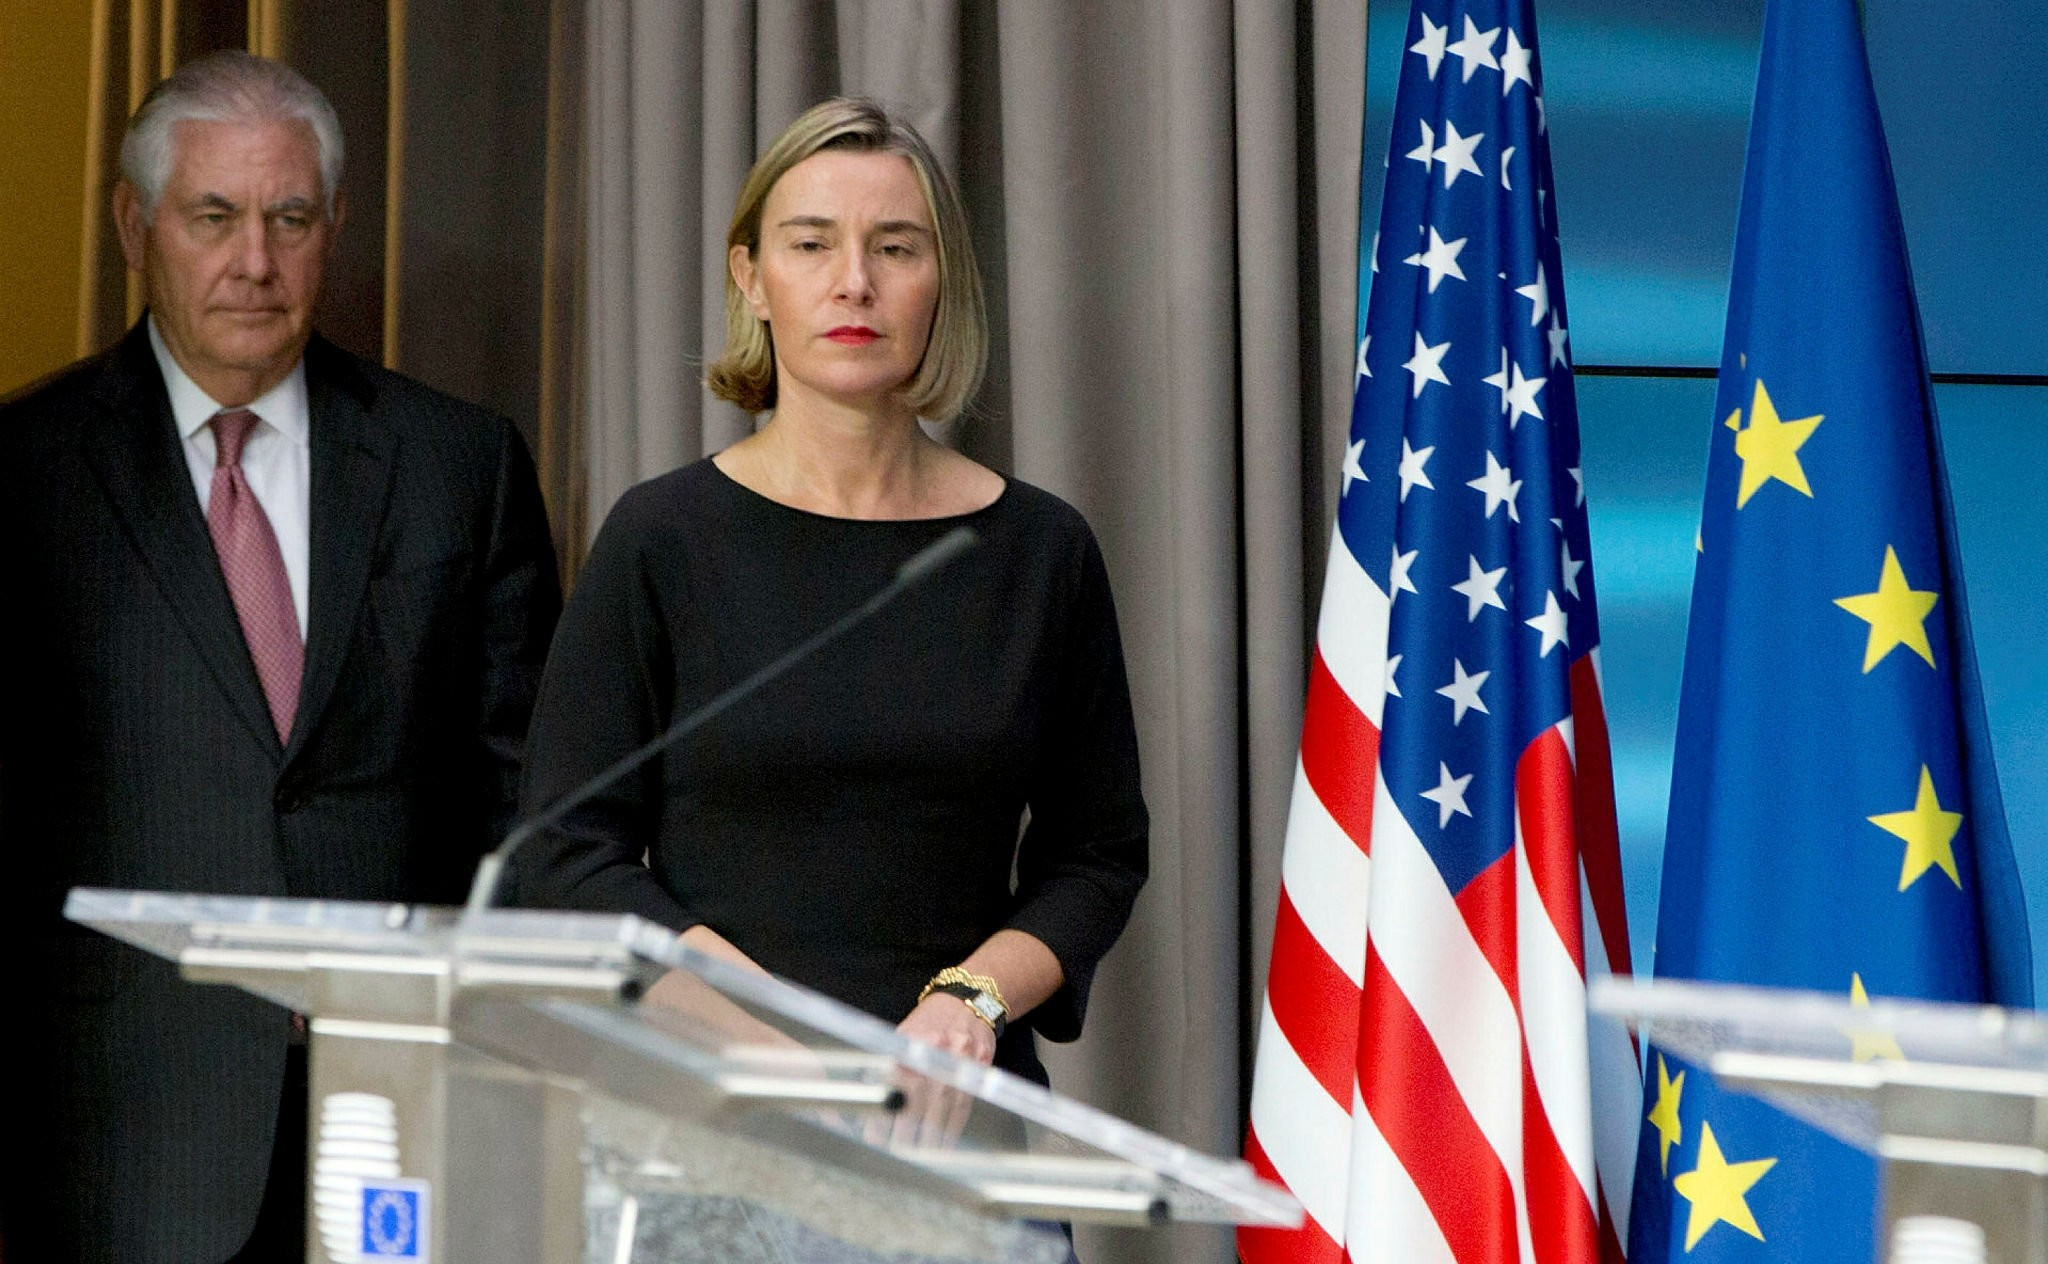 U.S. Secretary of State Tillerson and EU foreign policy chief Federica Mogherini address a joint news conference at the European Council in Brussels, December 5, 2017. (REUTERS Photo)